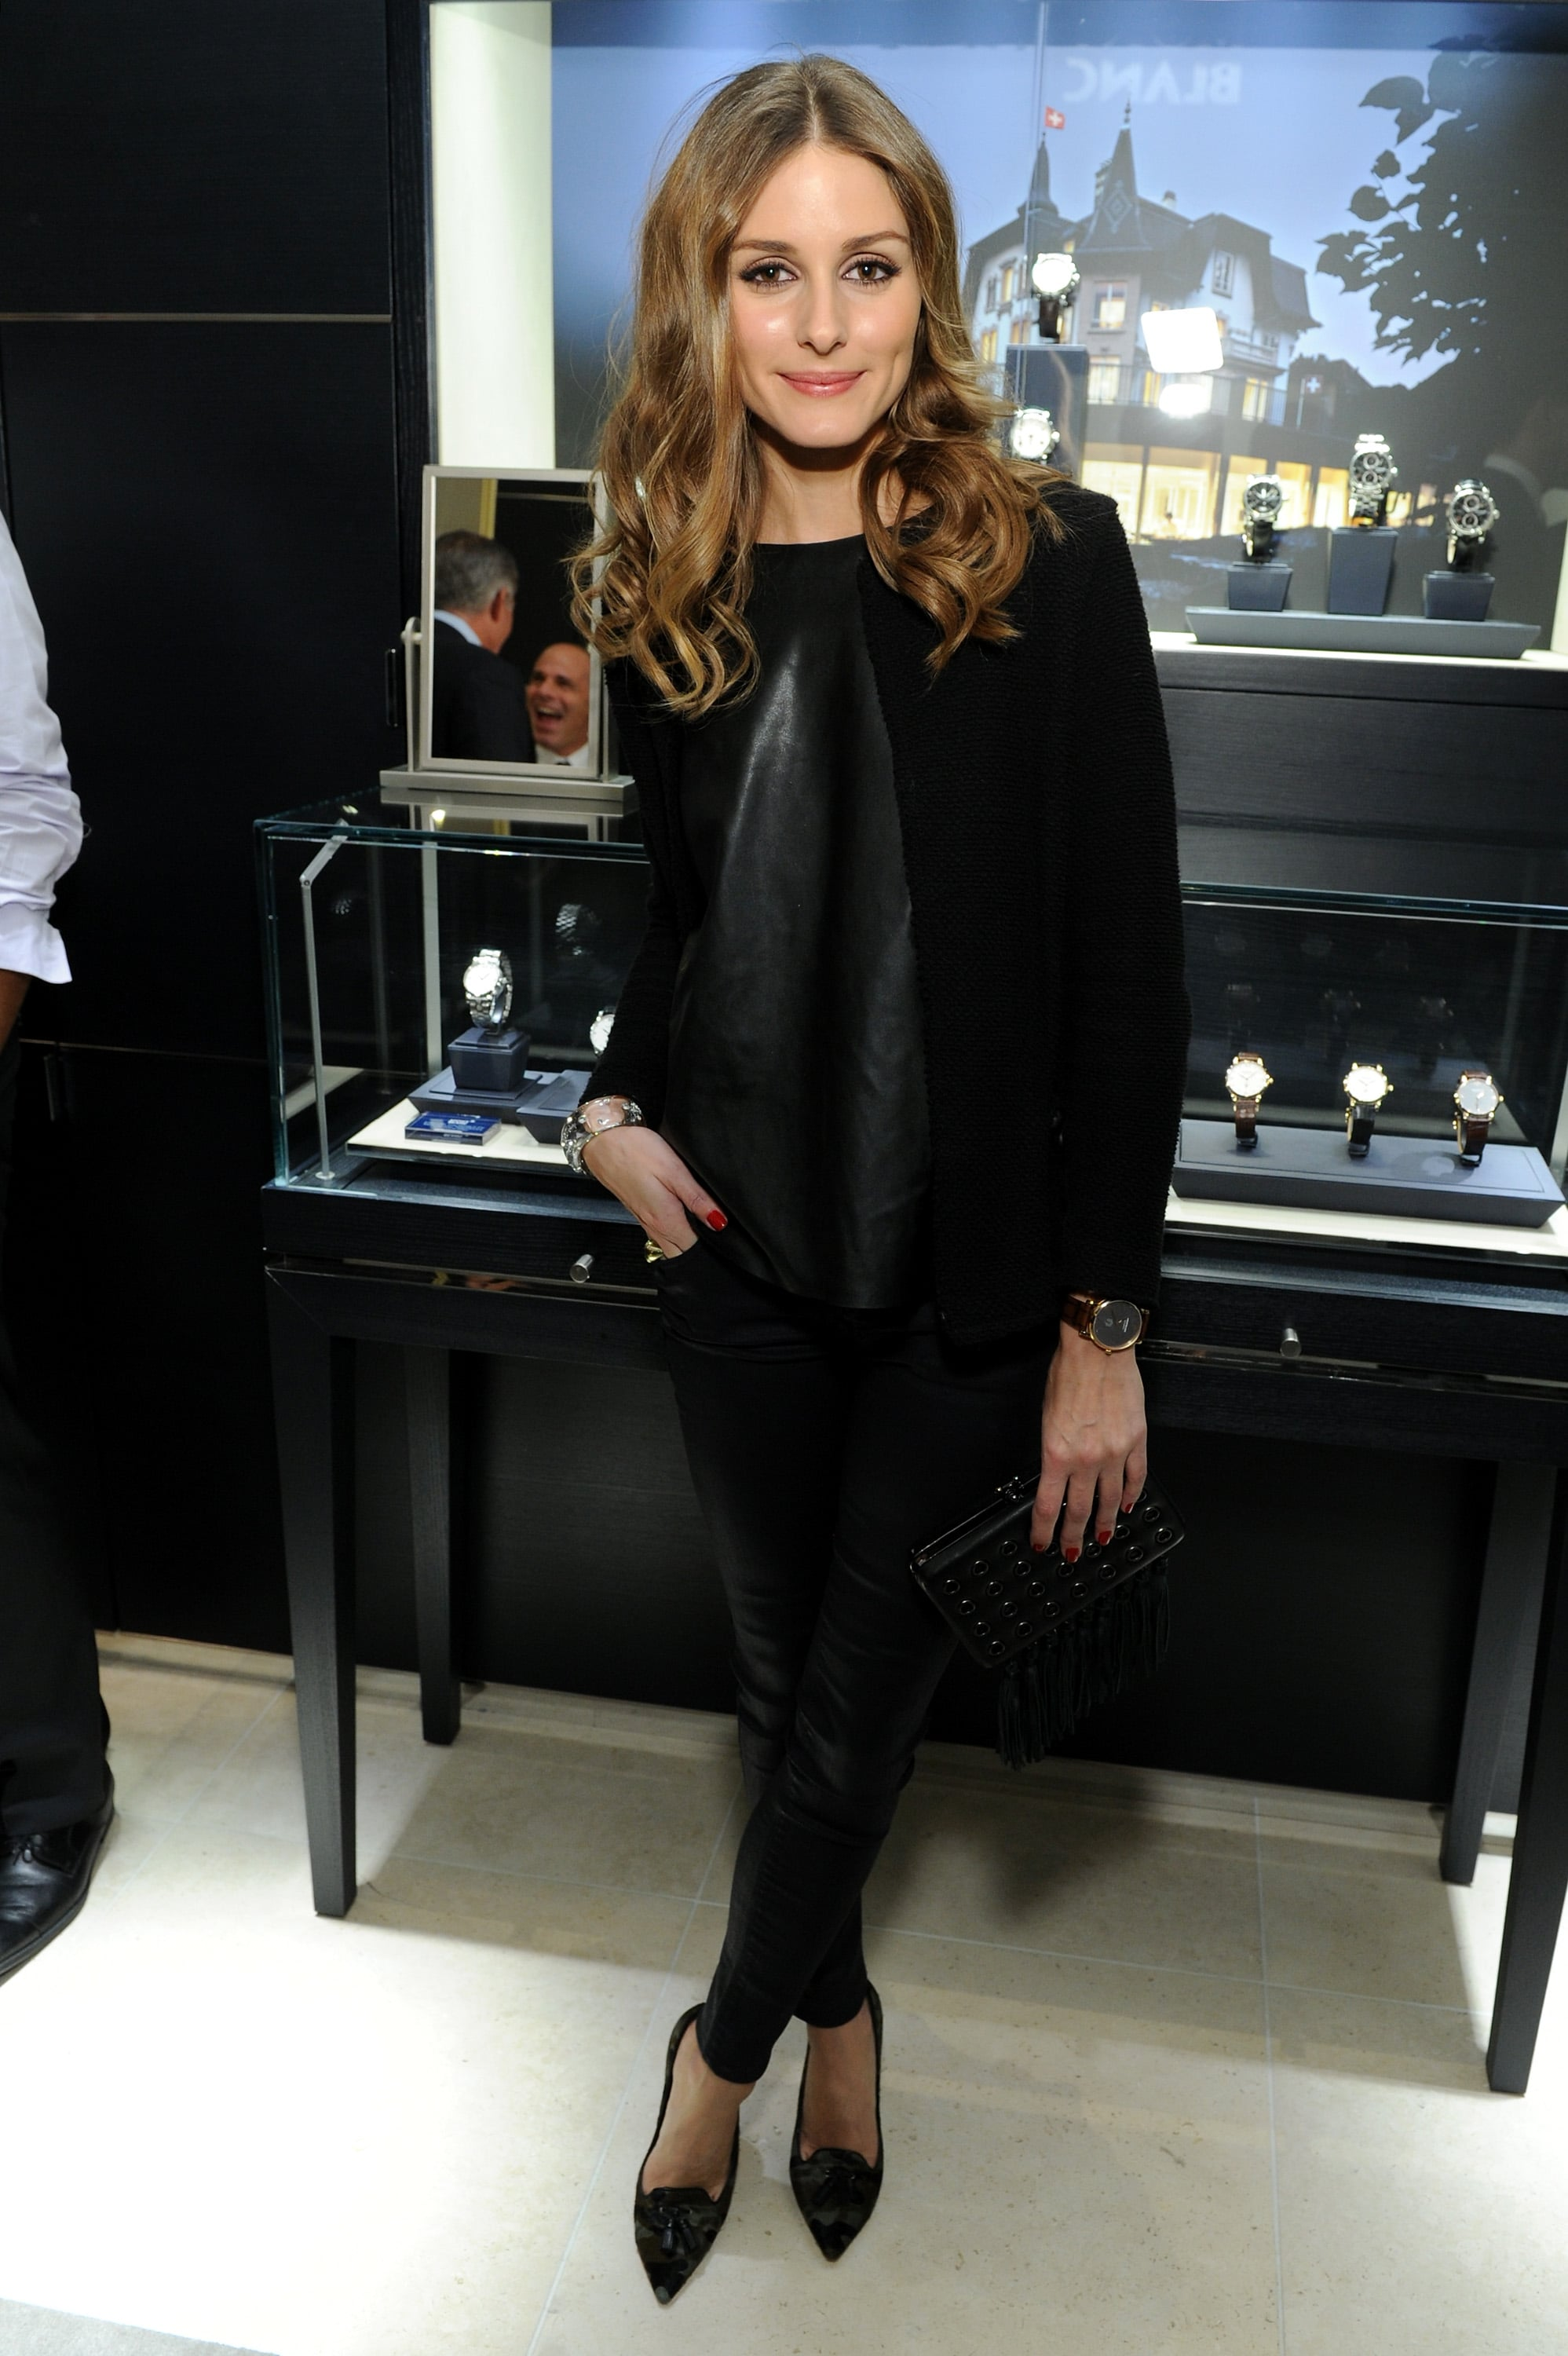 For a Montblanc event, Olivia outfitted all black with a little edge.